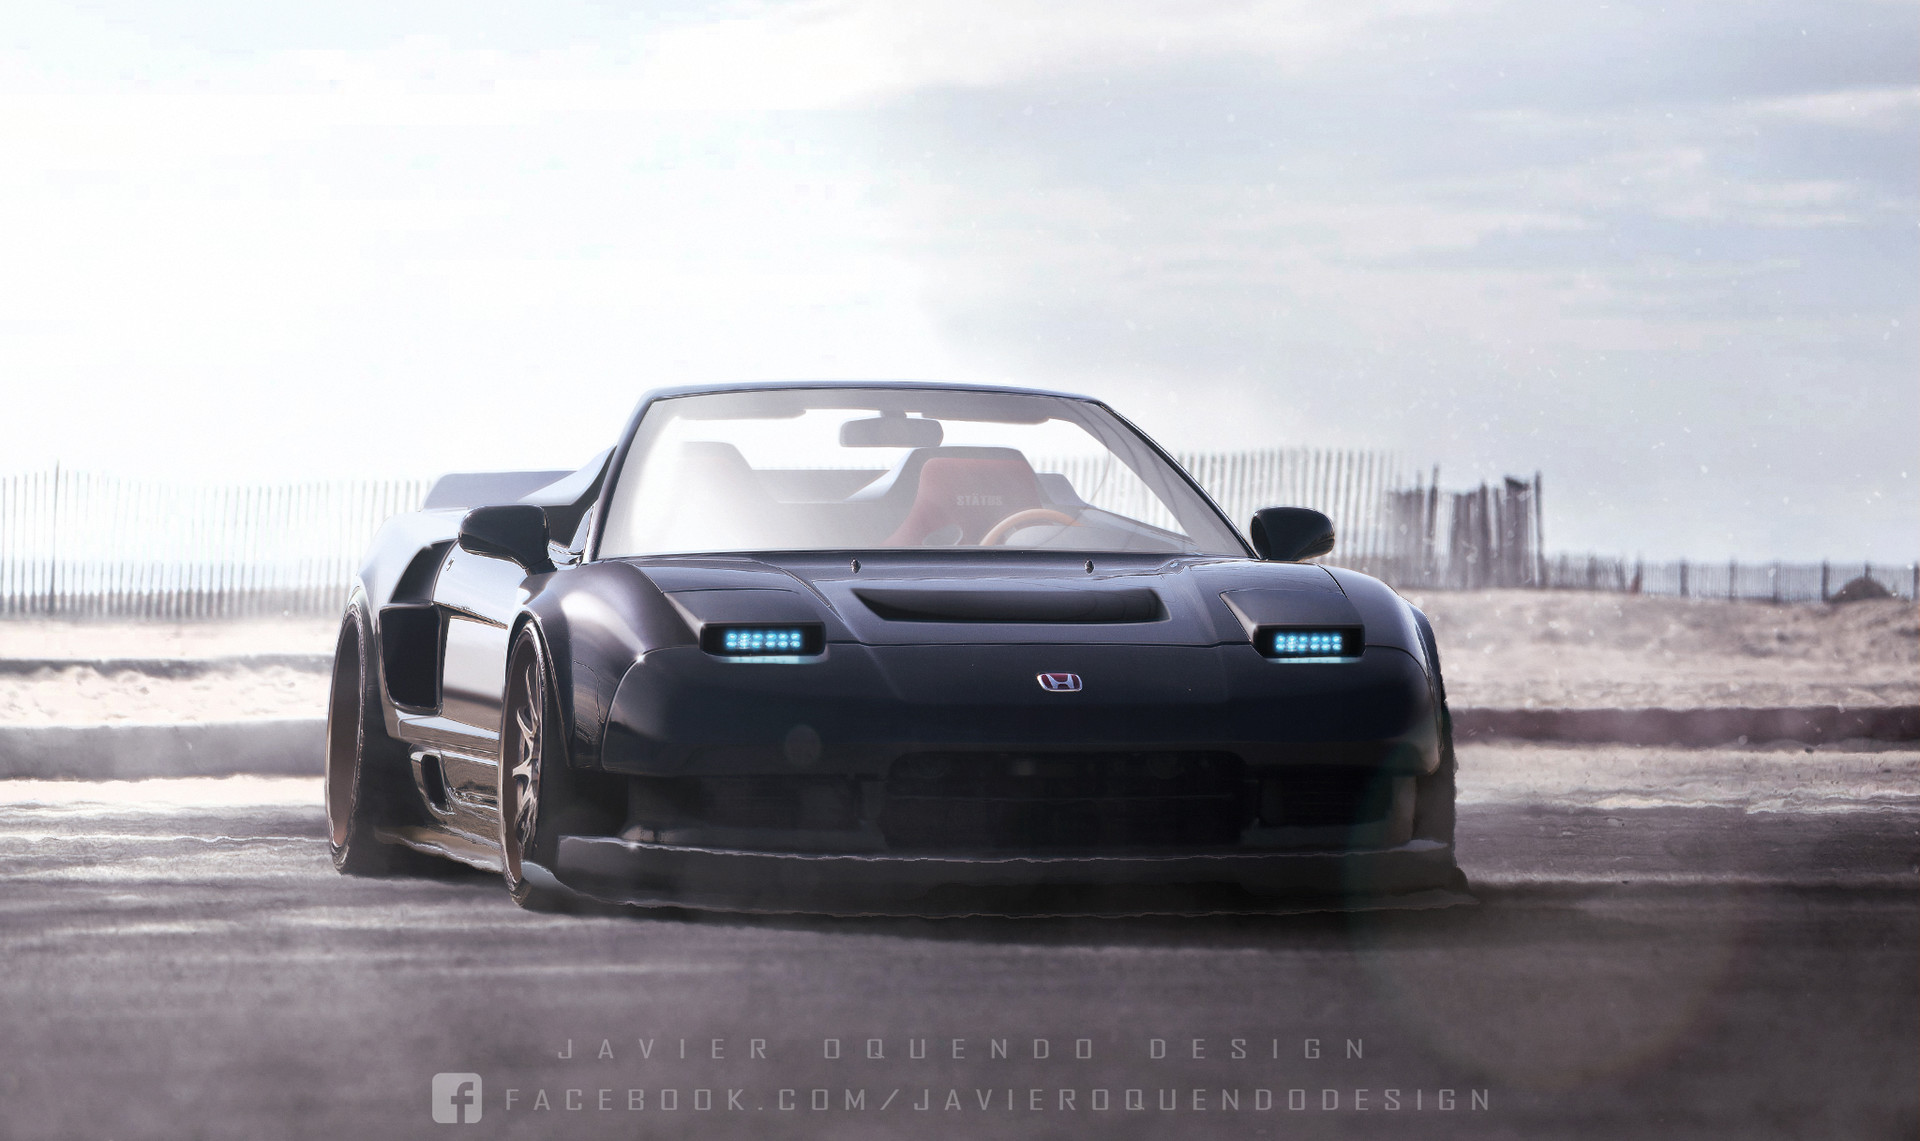 Artstation Widebody Honda Nsx Spider Javier Oquendo